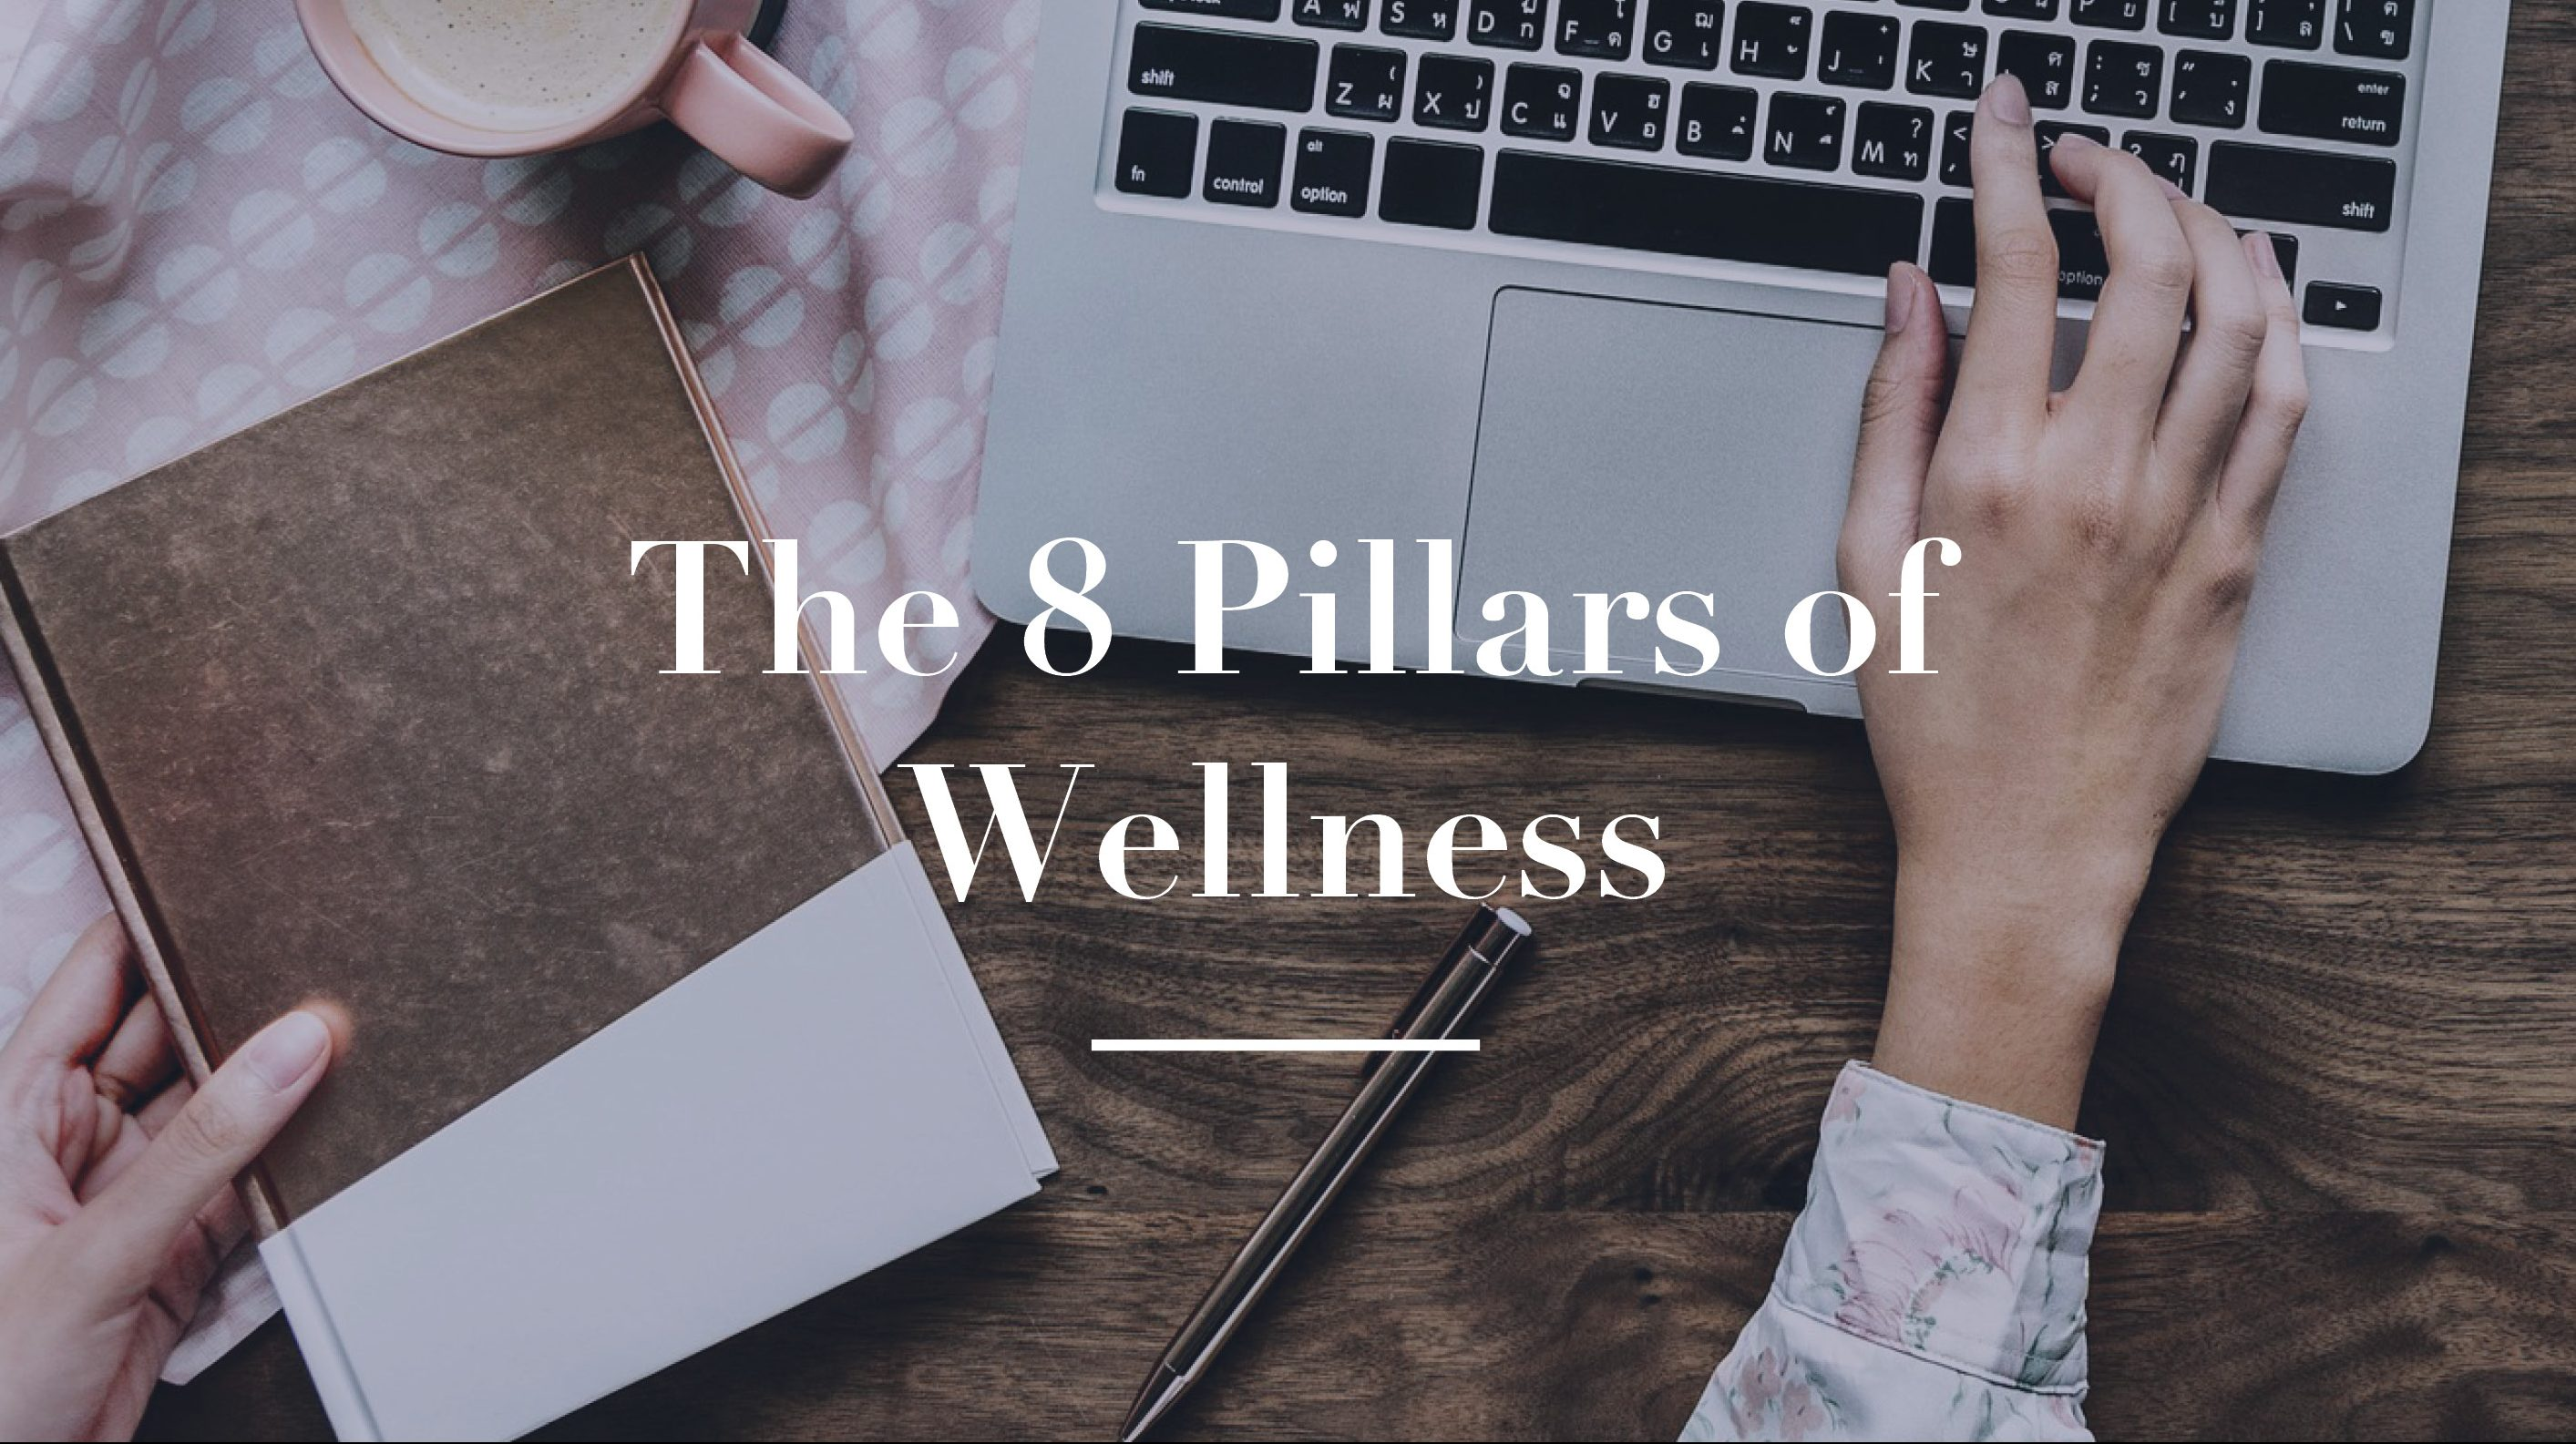 The 8 Pillars of Wellness